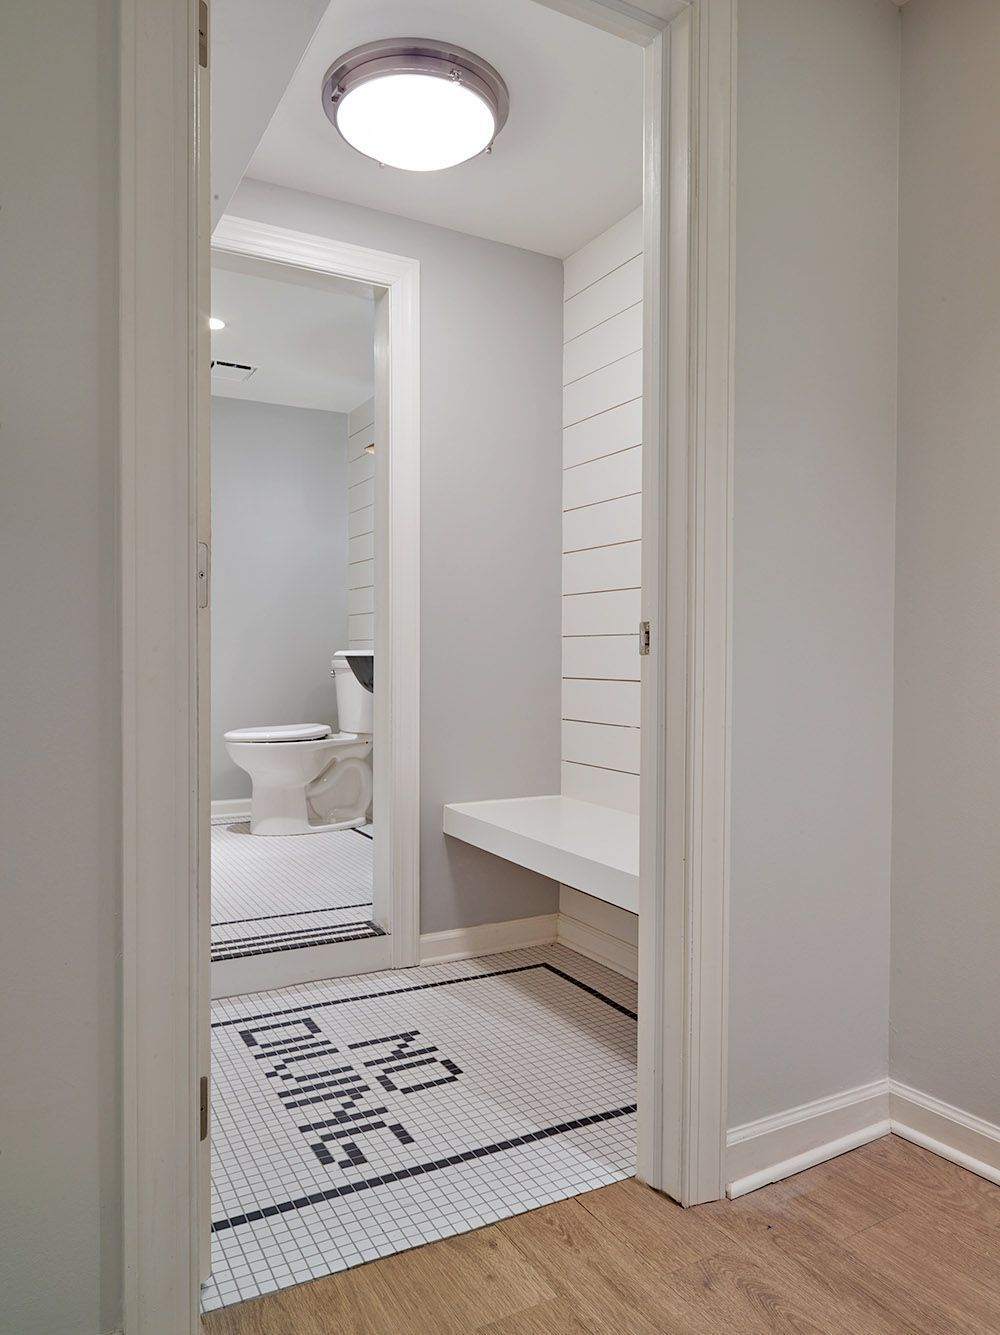 Nautical Changing room for Pool House with white ship-lap and fun No diving… #...#changing #diving #fun #house #nautical #pool #room #shiplap #white